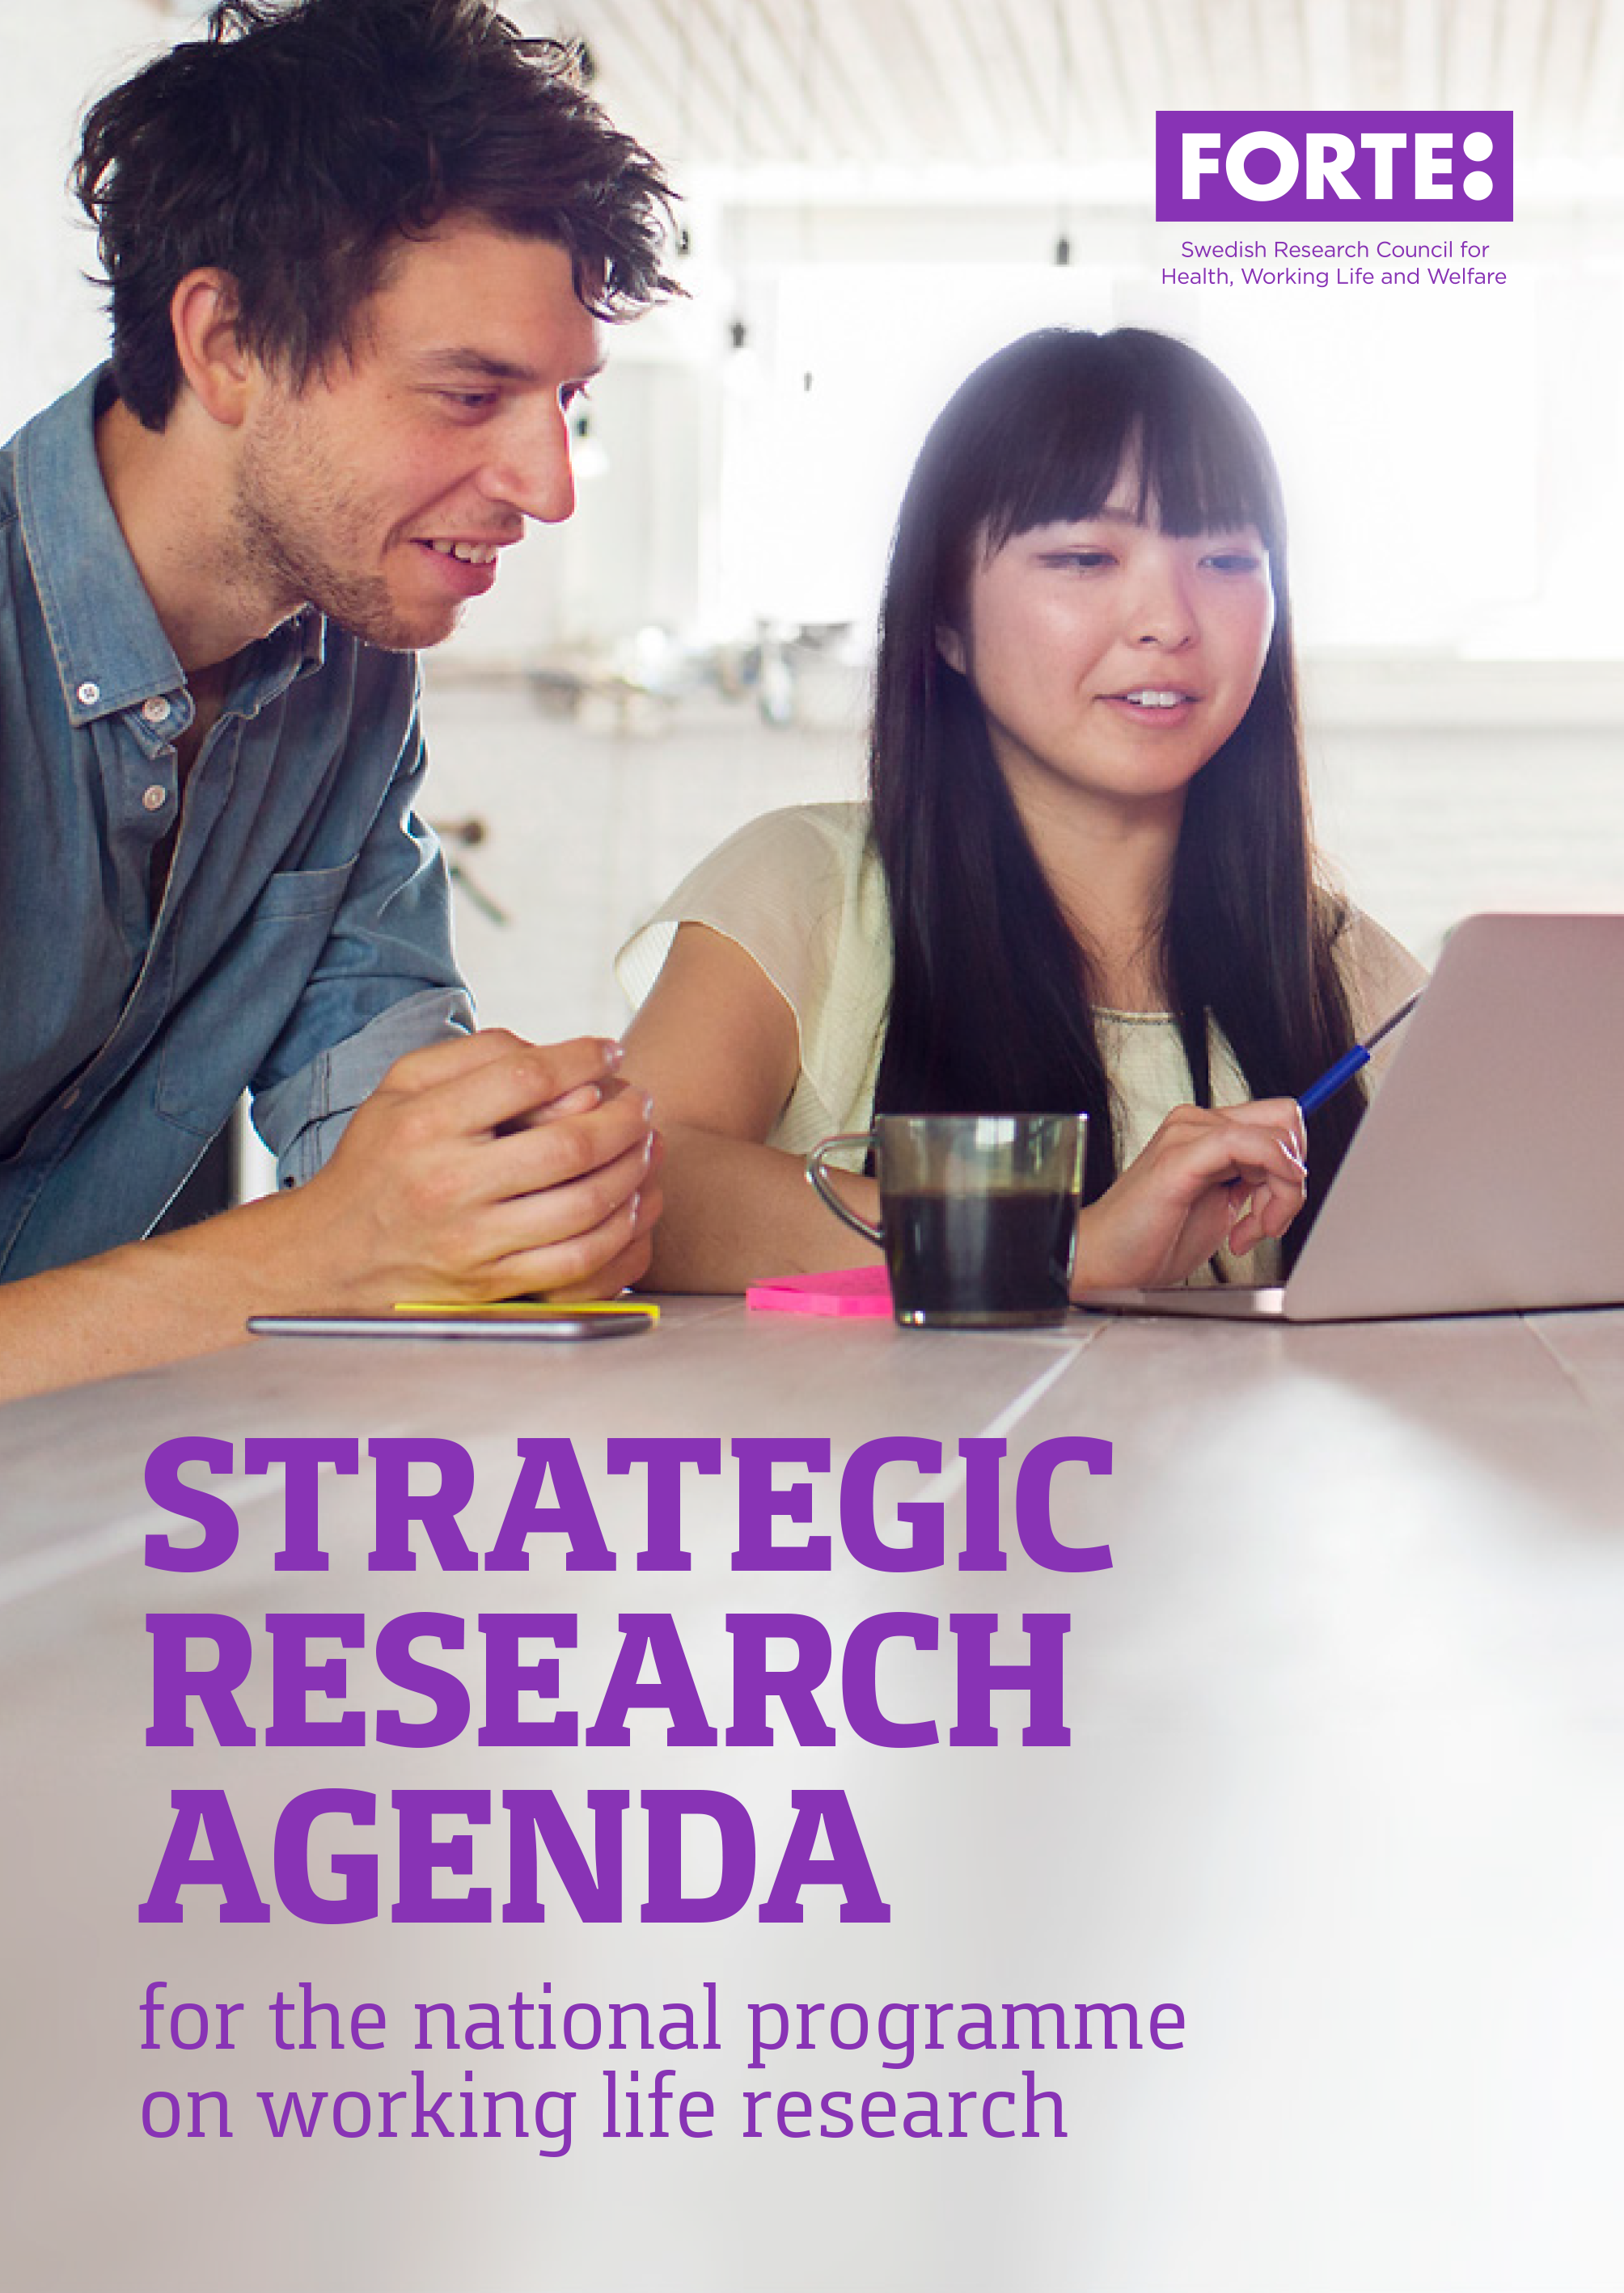 Strategic research agenda for the national programme on working life